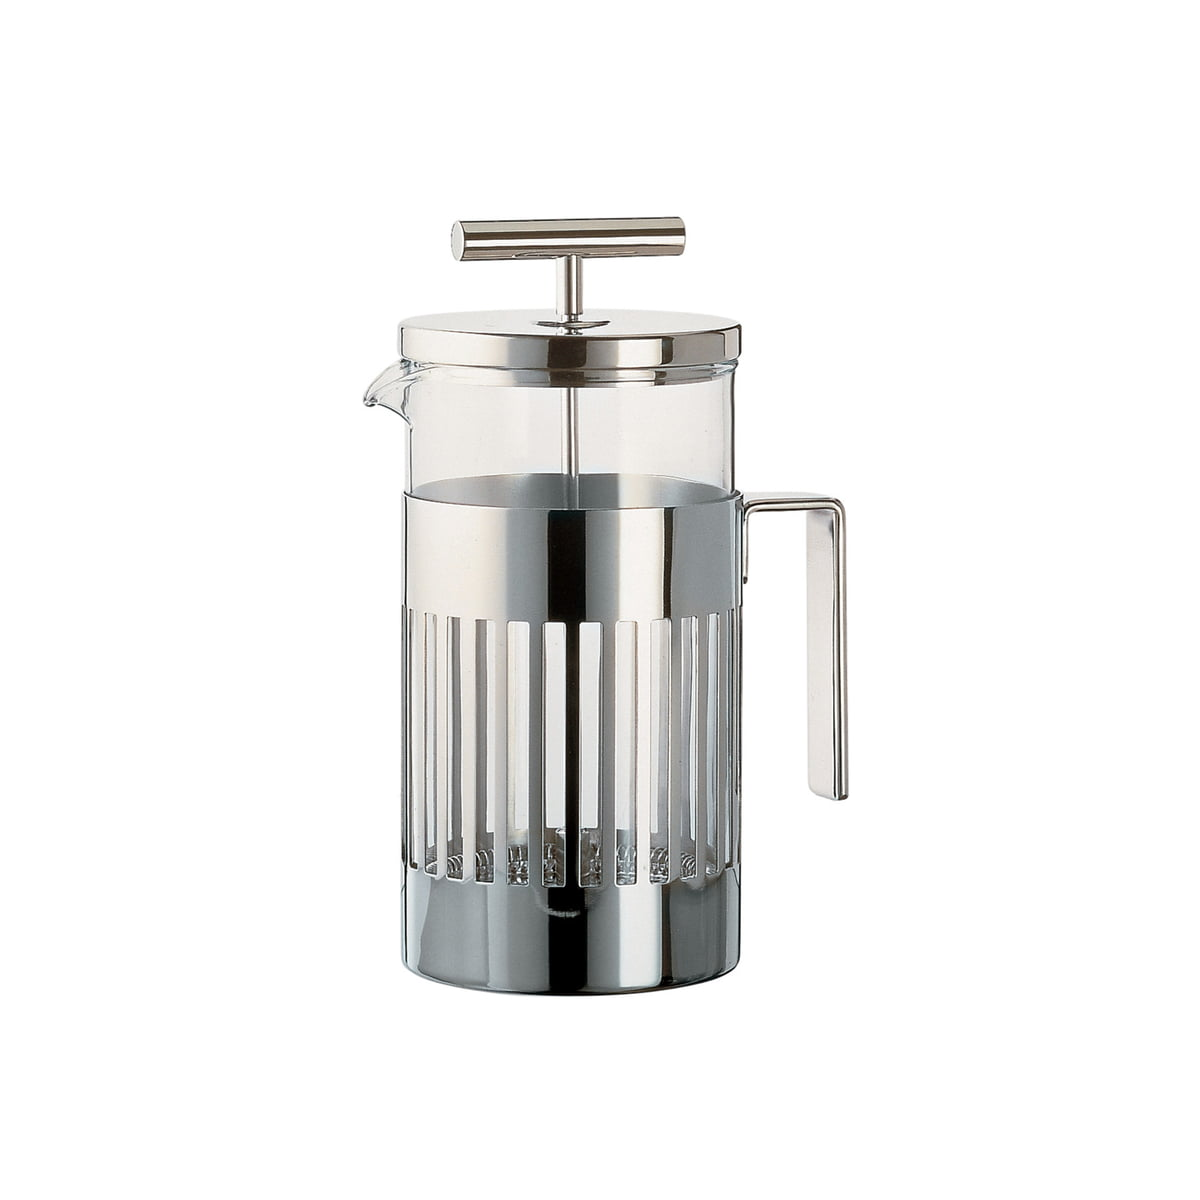 Filter Coffee Maker Flipkart : 9094 Coffee Maker by Alessi in the design shop